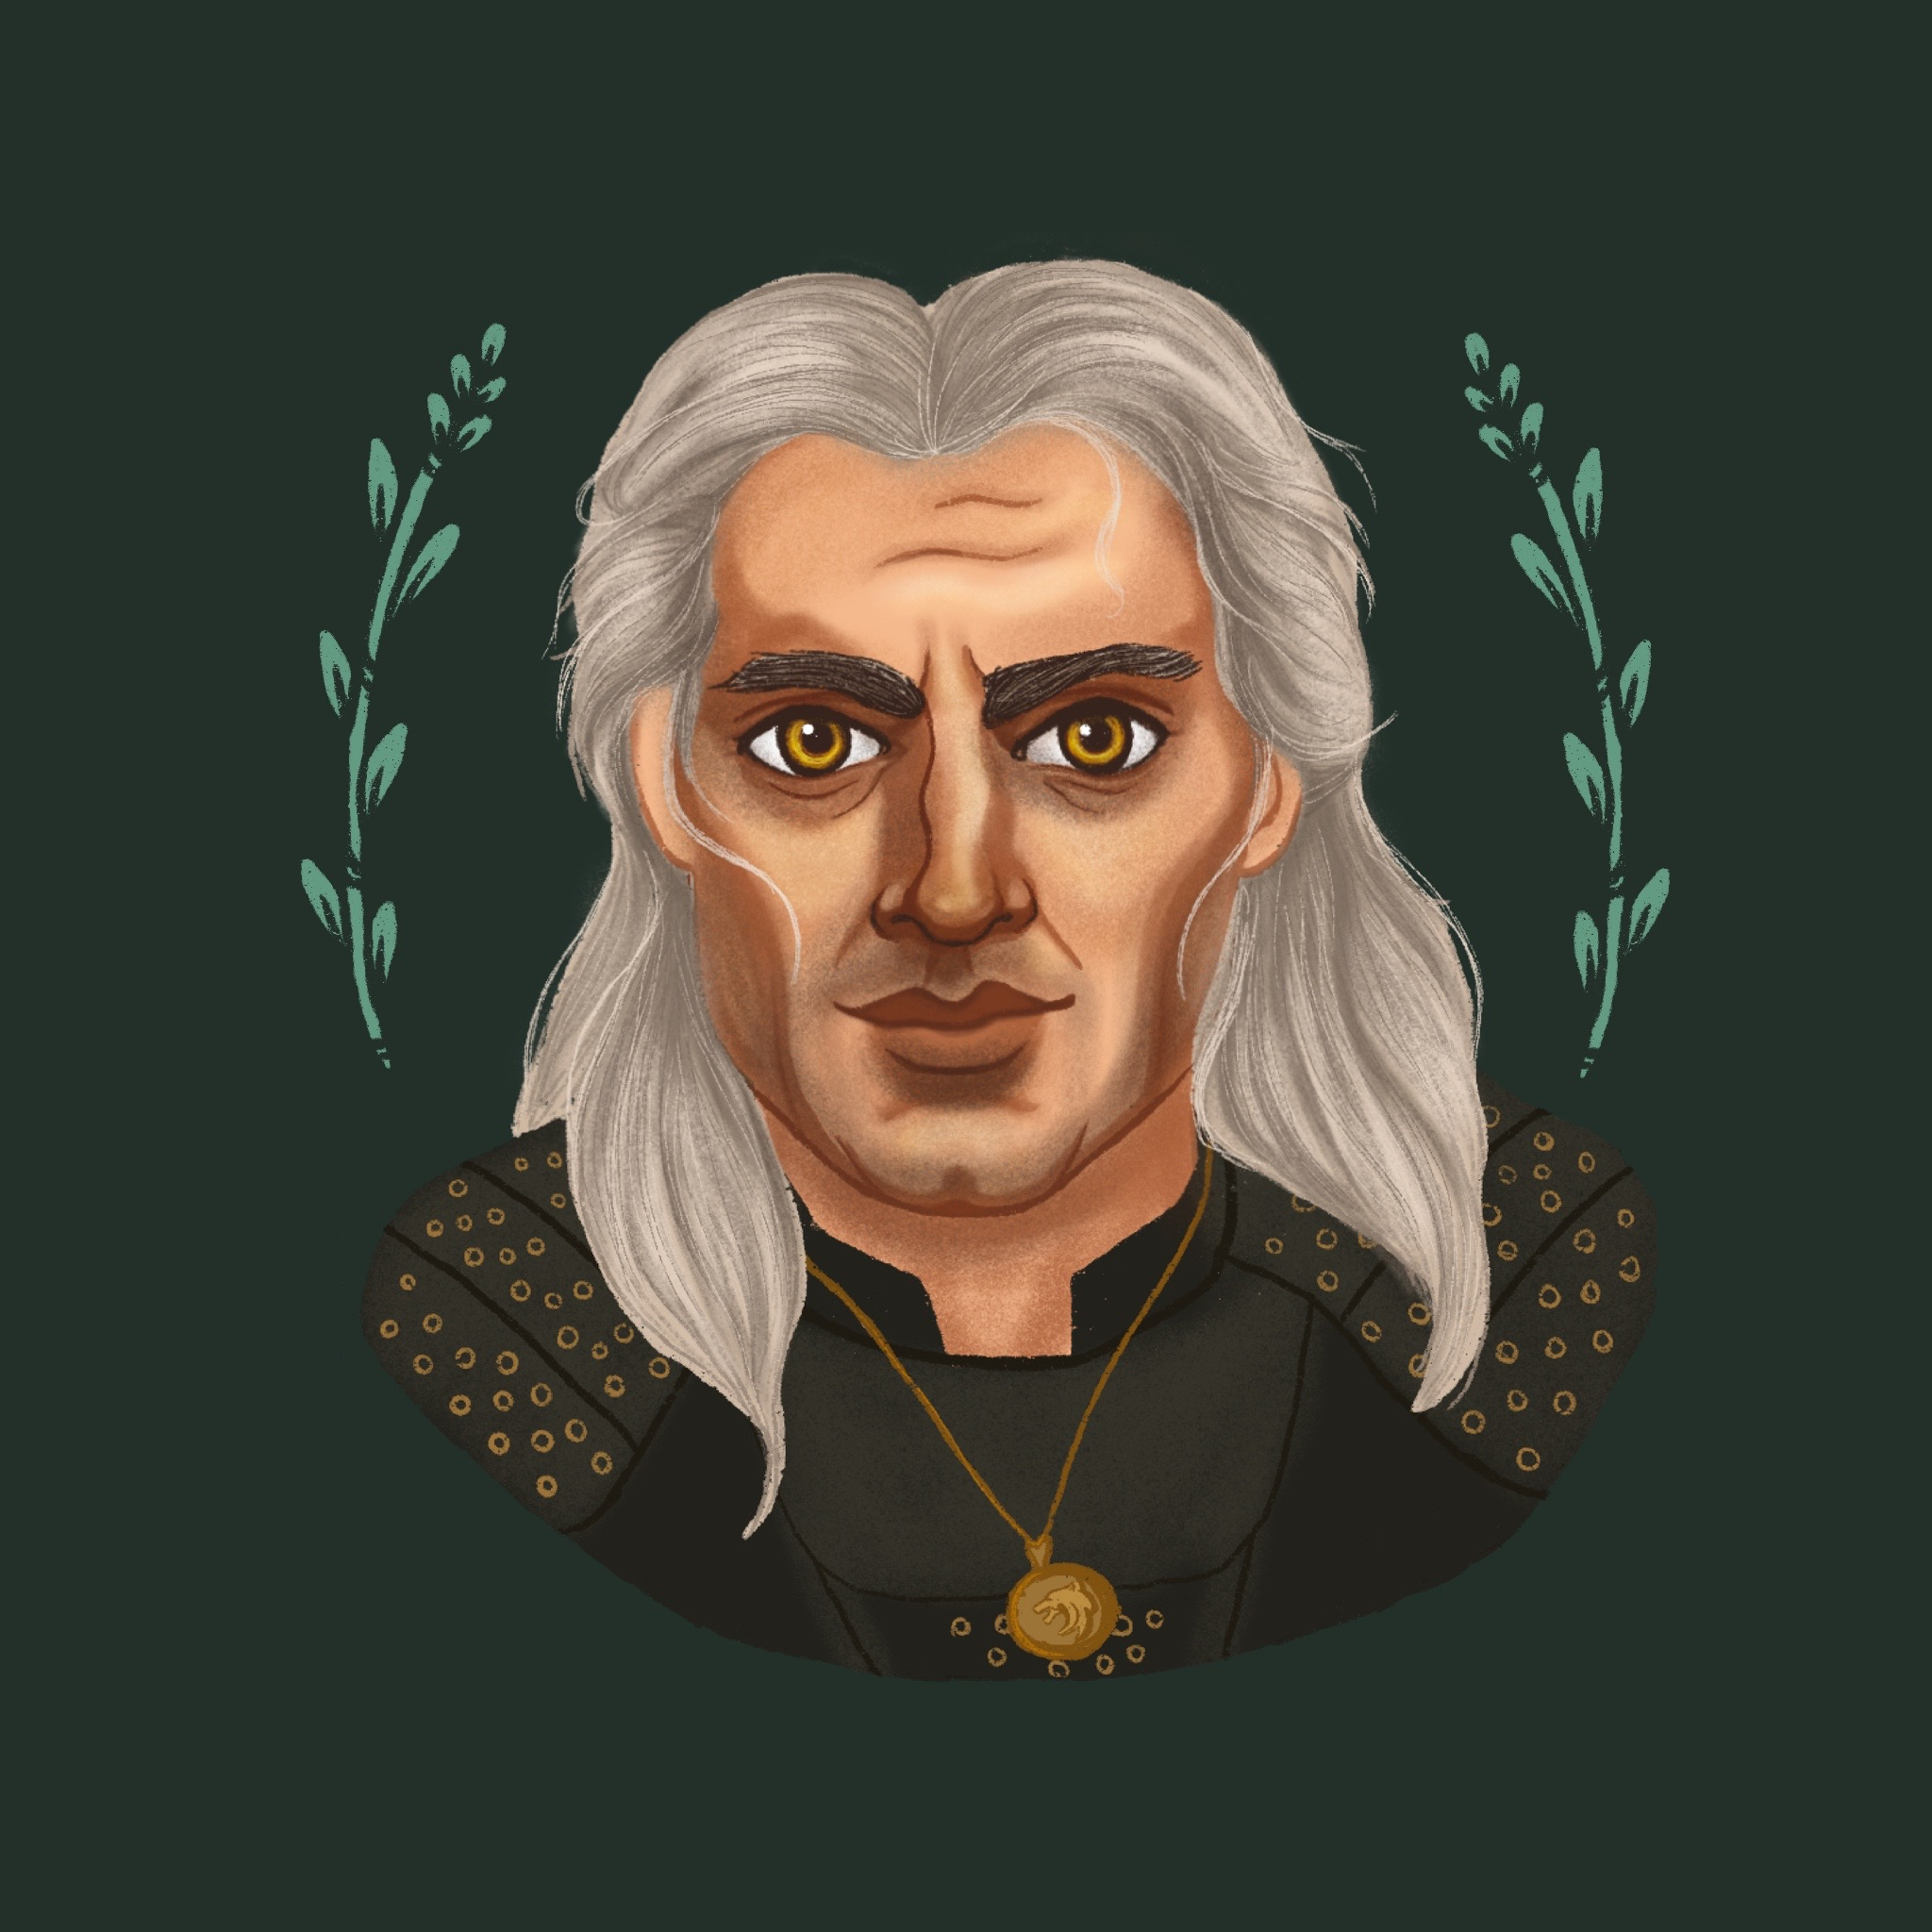 An illustration / portrait of Geralt of Rivia from The Witcher on Netflix.